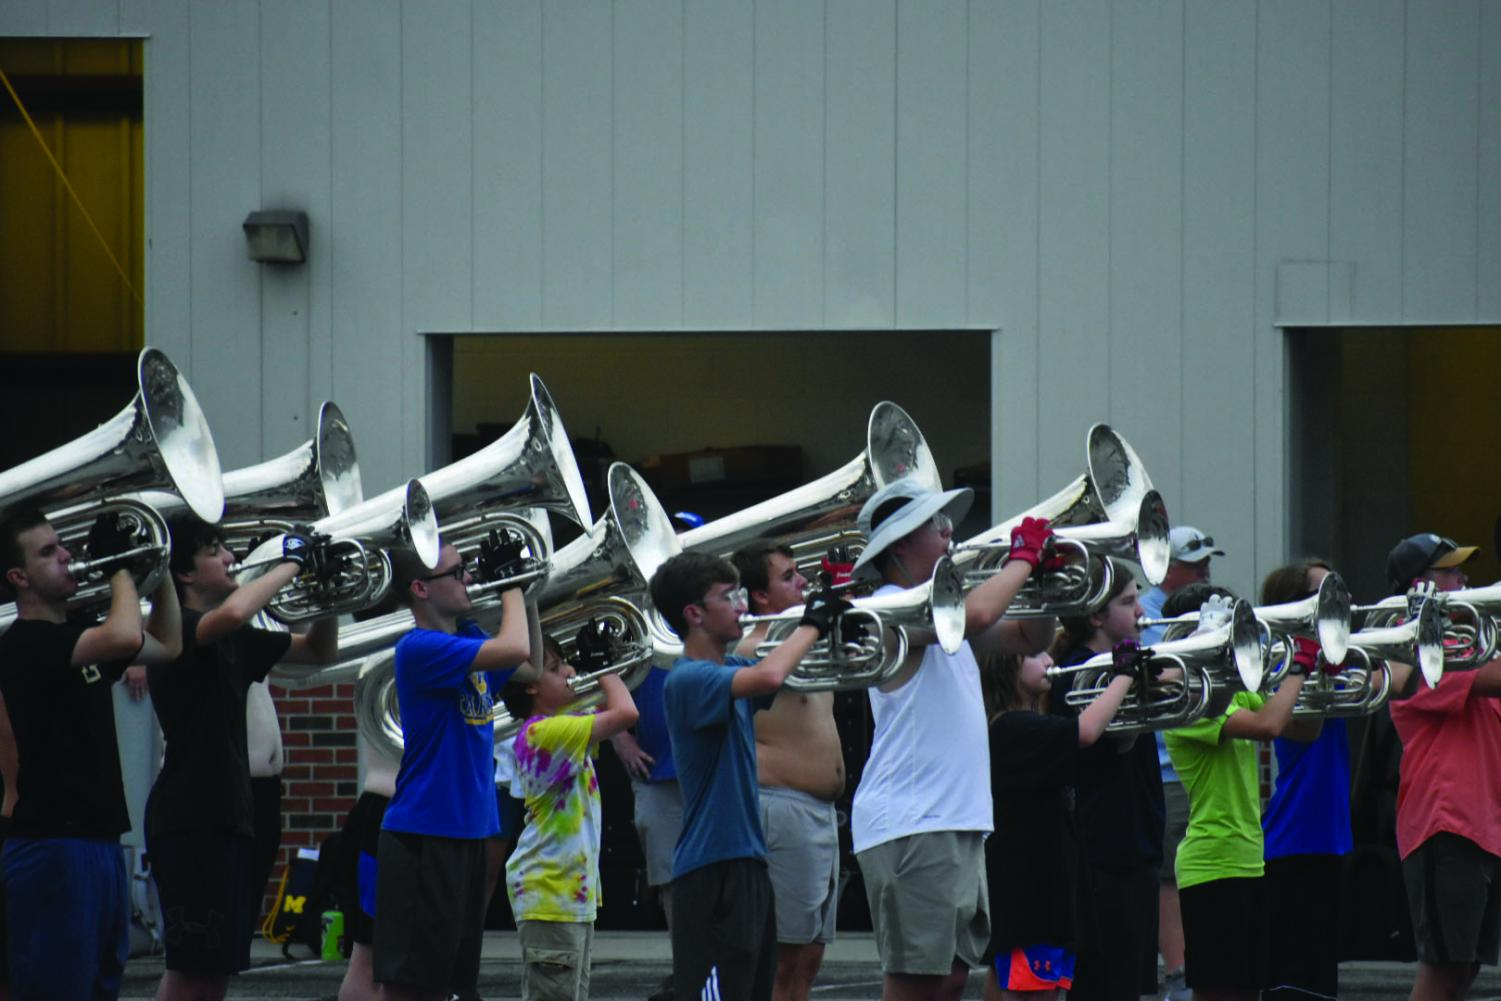 Marching band working to get less experienced members ready for in-person competitions, halftime performances